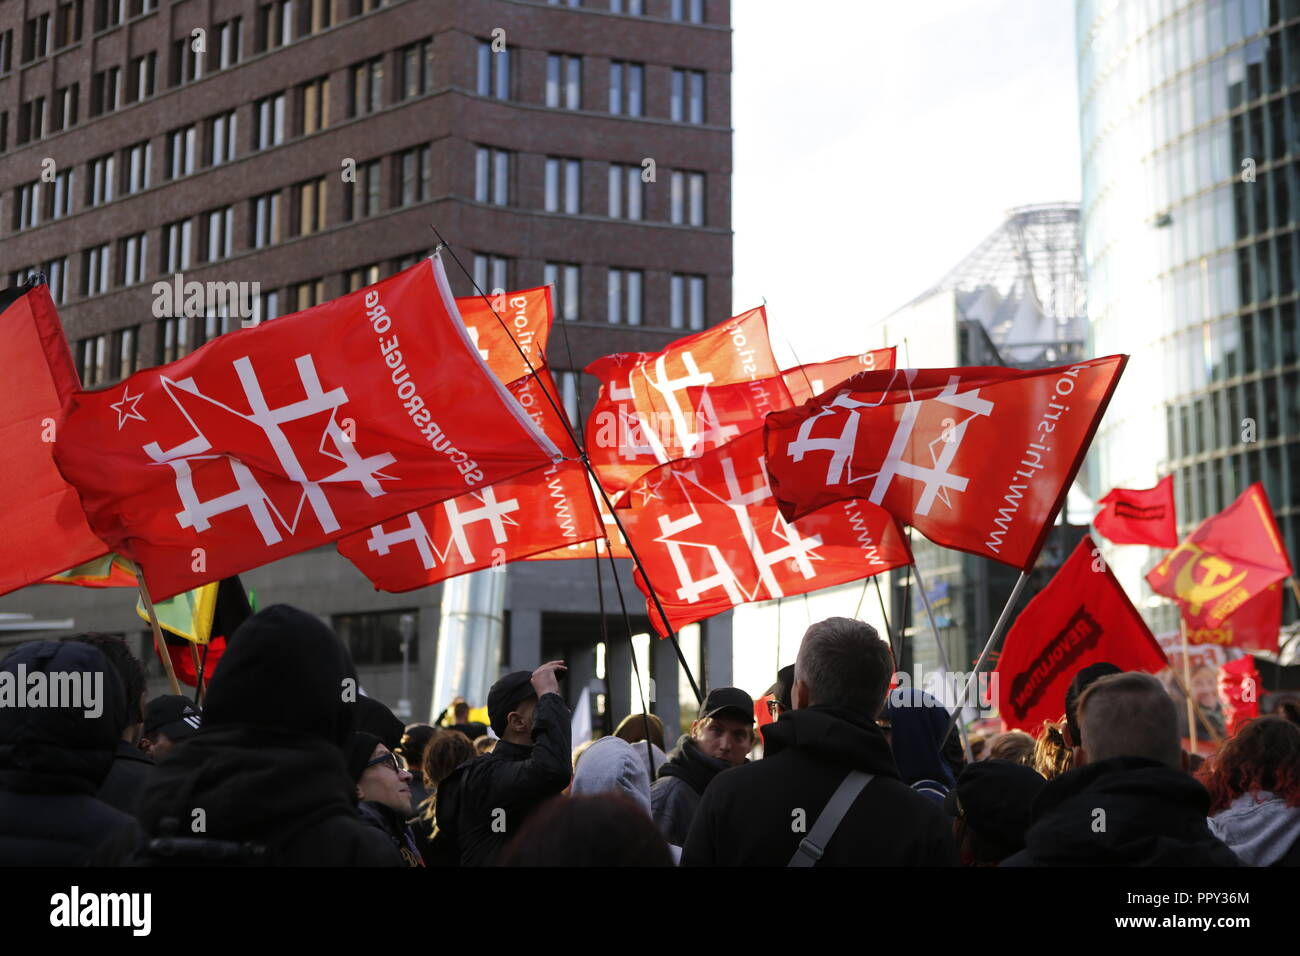 Berlin, Germany. 28th September 2018.  .Demonstration in Berlin Mitte 'Erdogan not welcome' from Potsdamer Platz to the Großen Stern. Credit: SAO Struck/Alamy Live News - Stock Image